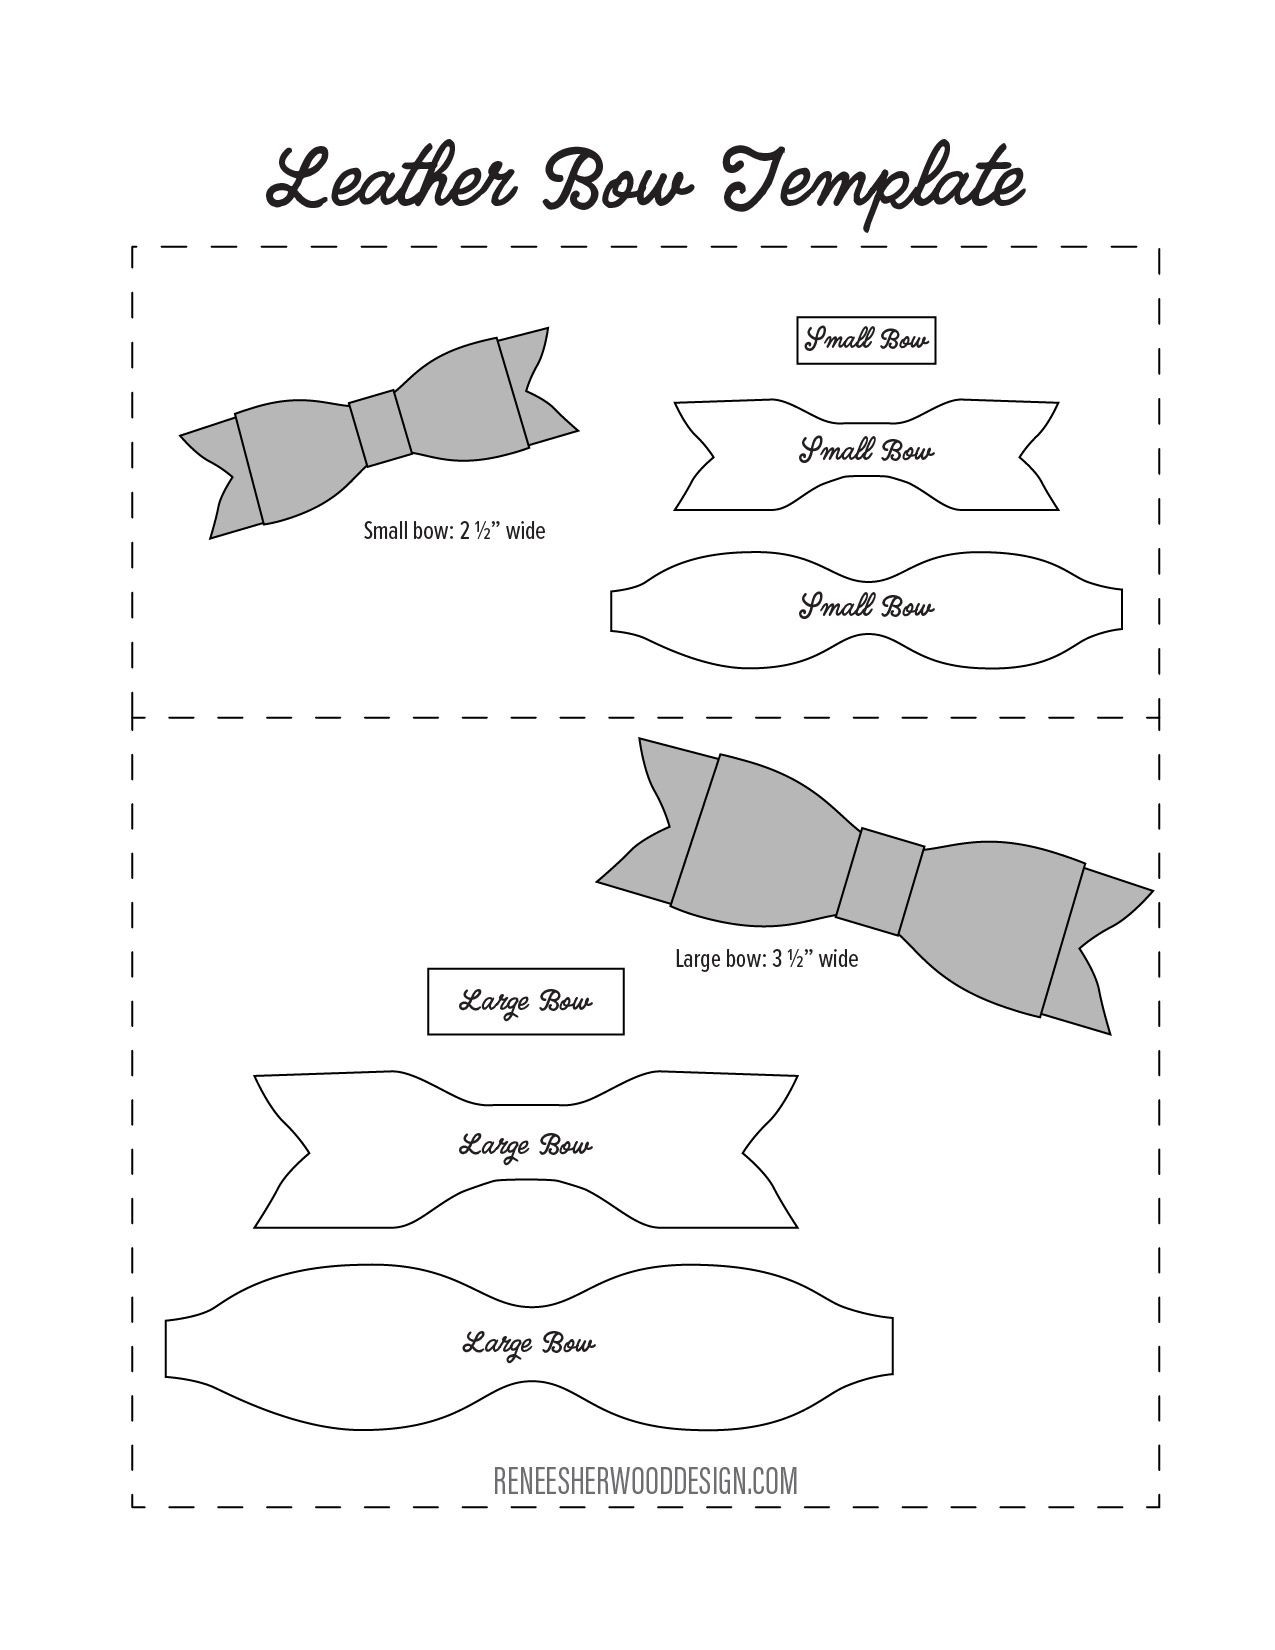 FREE No Sew Leather or Felt Bow Template at